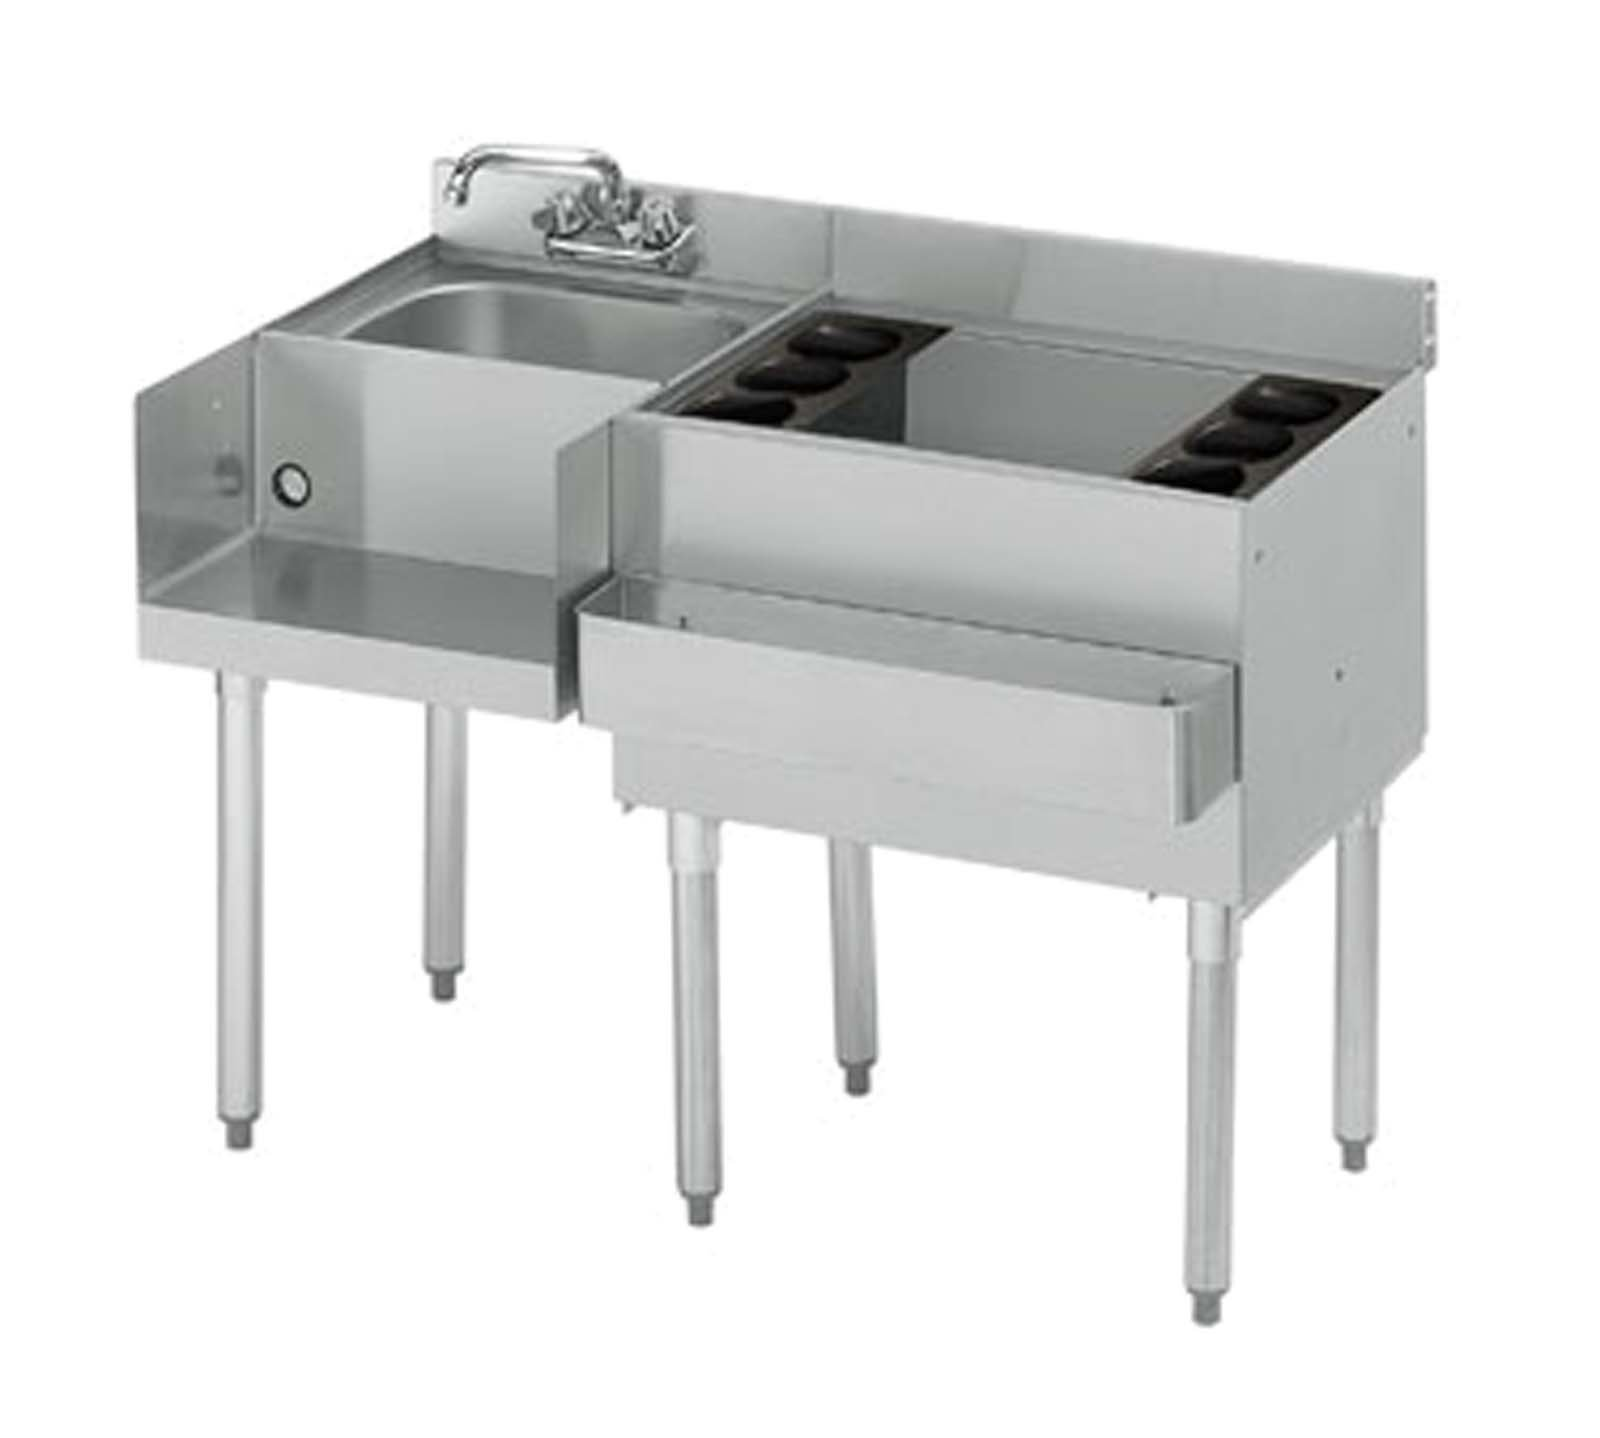 Krowne 21-W48R-7 - 2100 48'' Blender/Ice Bin Station with Cold Plate Bin on Right